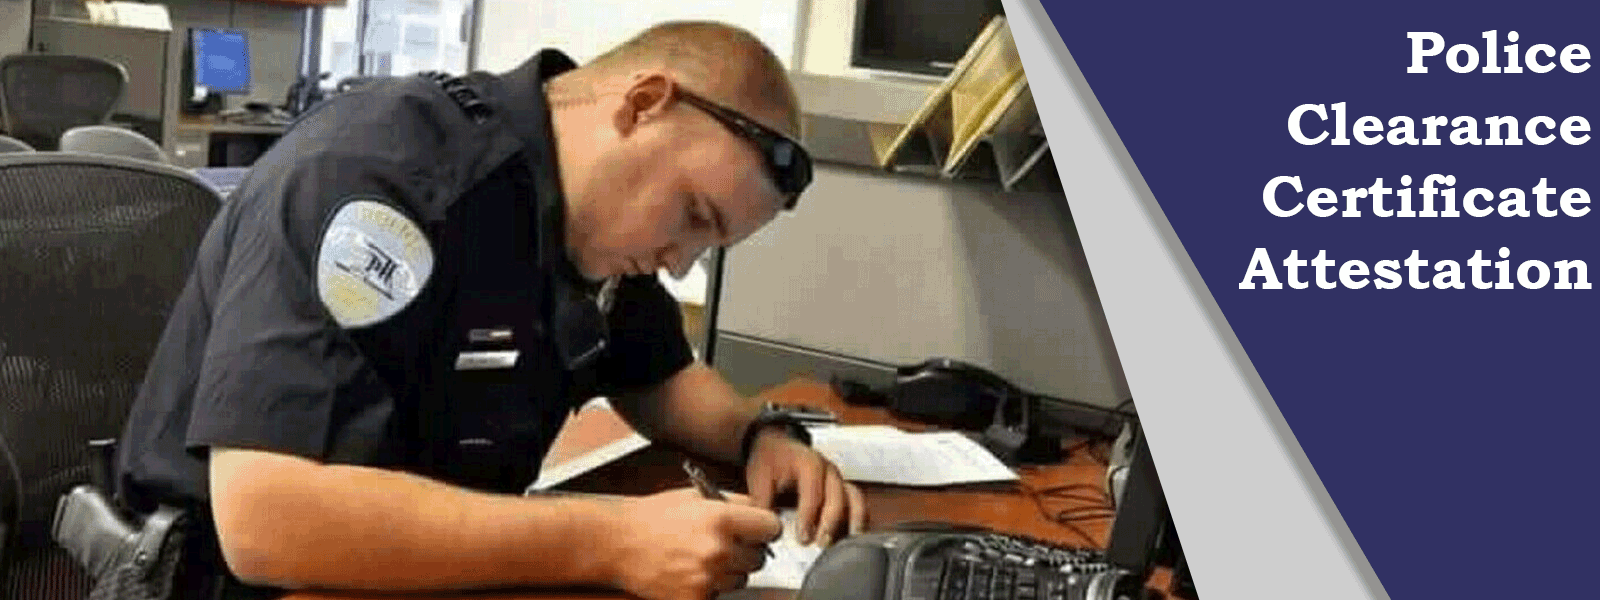 Genius Attestation | Police Clearance Certificate Attestation